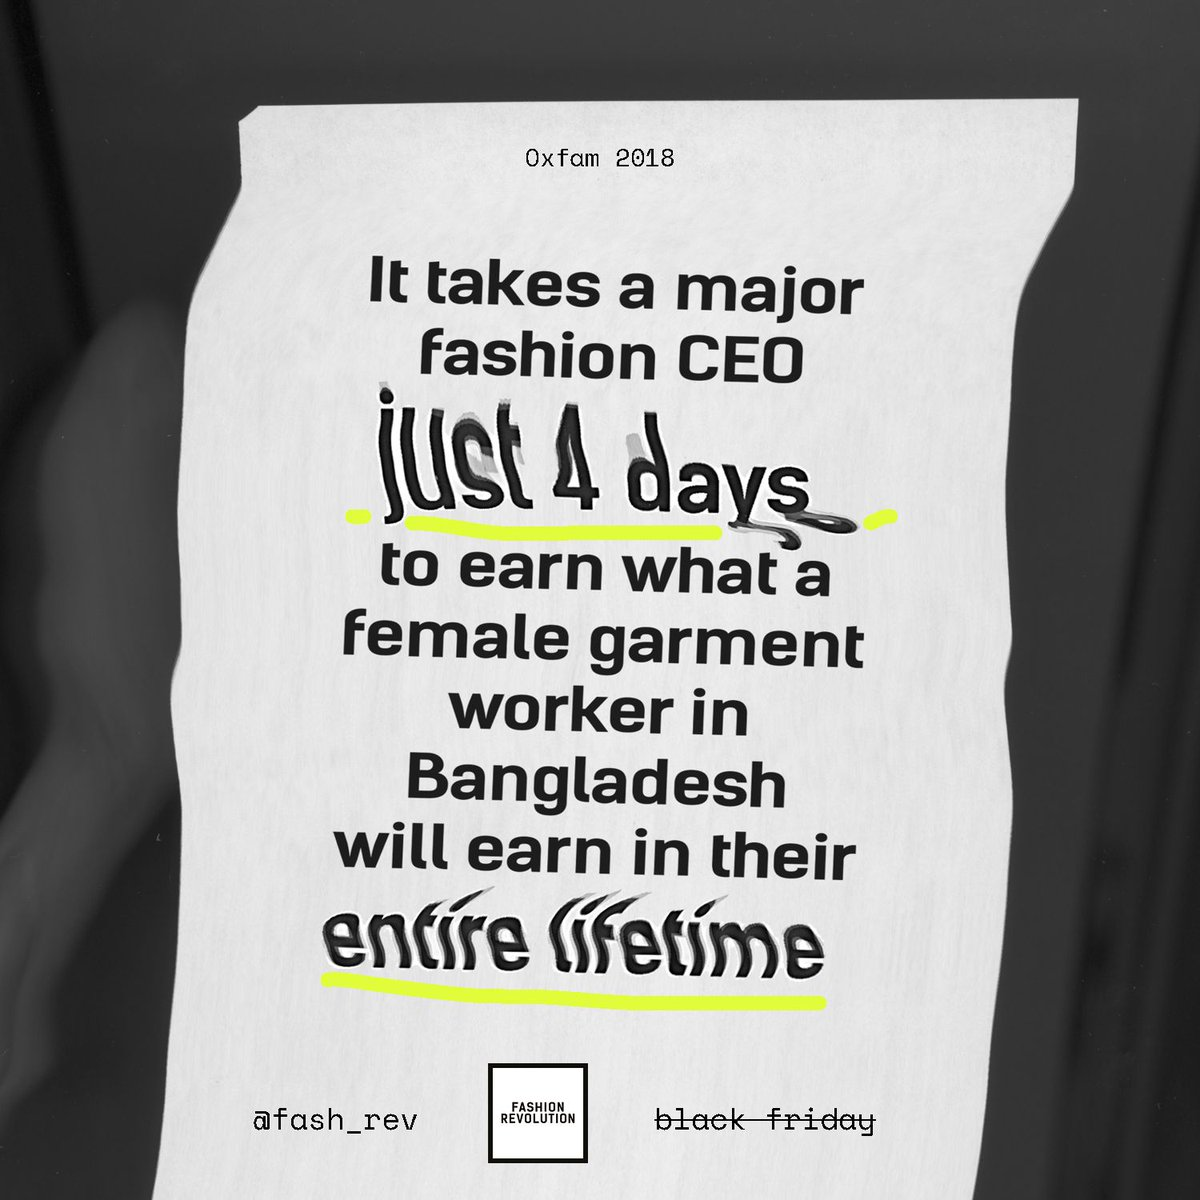 Before going #BlackFriday shopping, remember that a CEO of a fashion brand takes four days to earn what a garment worker will make in her entire life. Ask brands #WhoMadeMyClothes and demand they take responsibility for the disparity.   👩💻: @Oxfam for @Fash_Rev